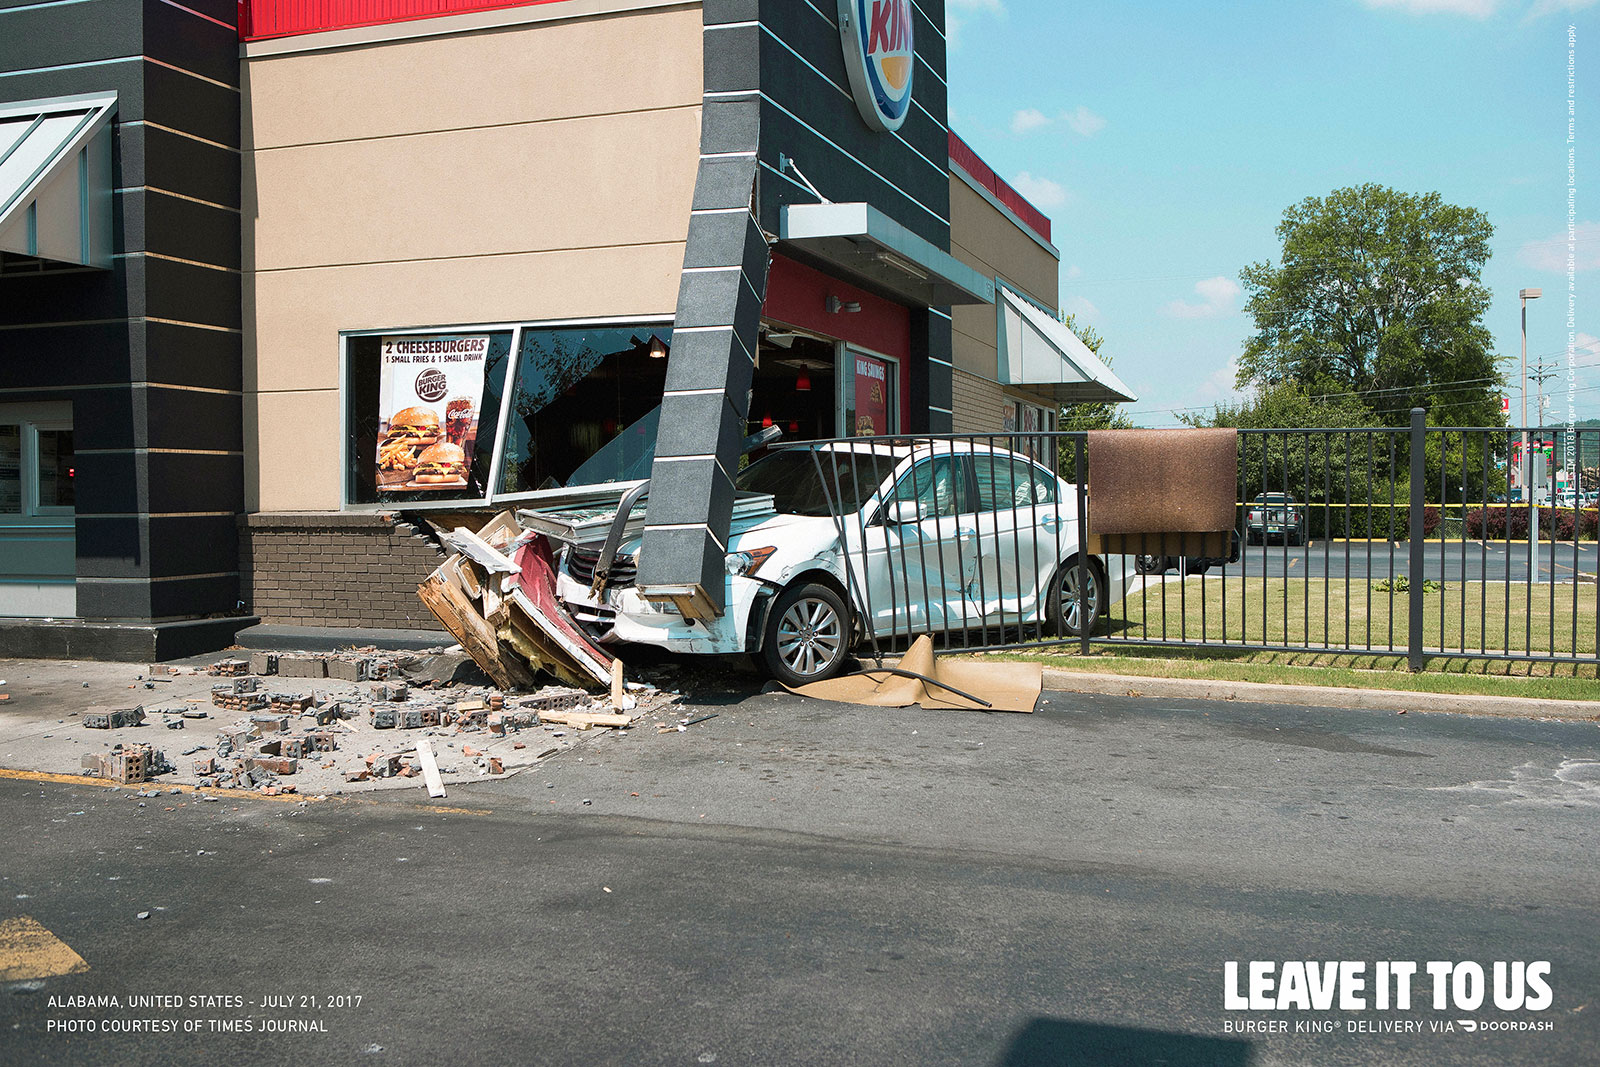 In Home Delivery Burger King Pushes Home Delivery With Photos Of Real Car Crashes